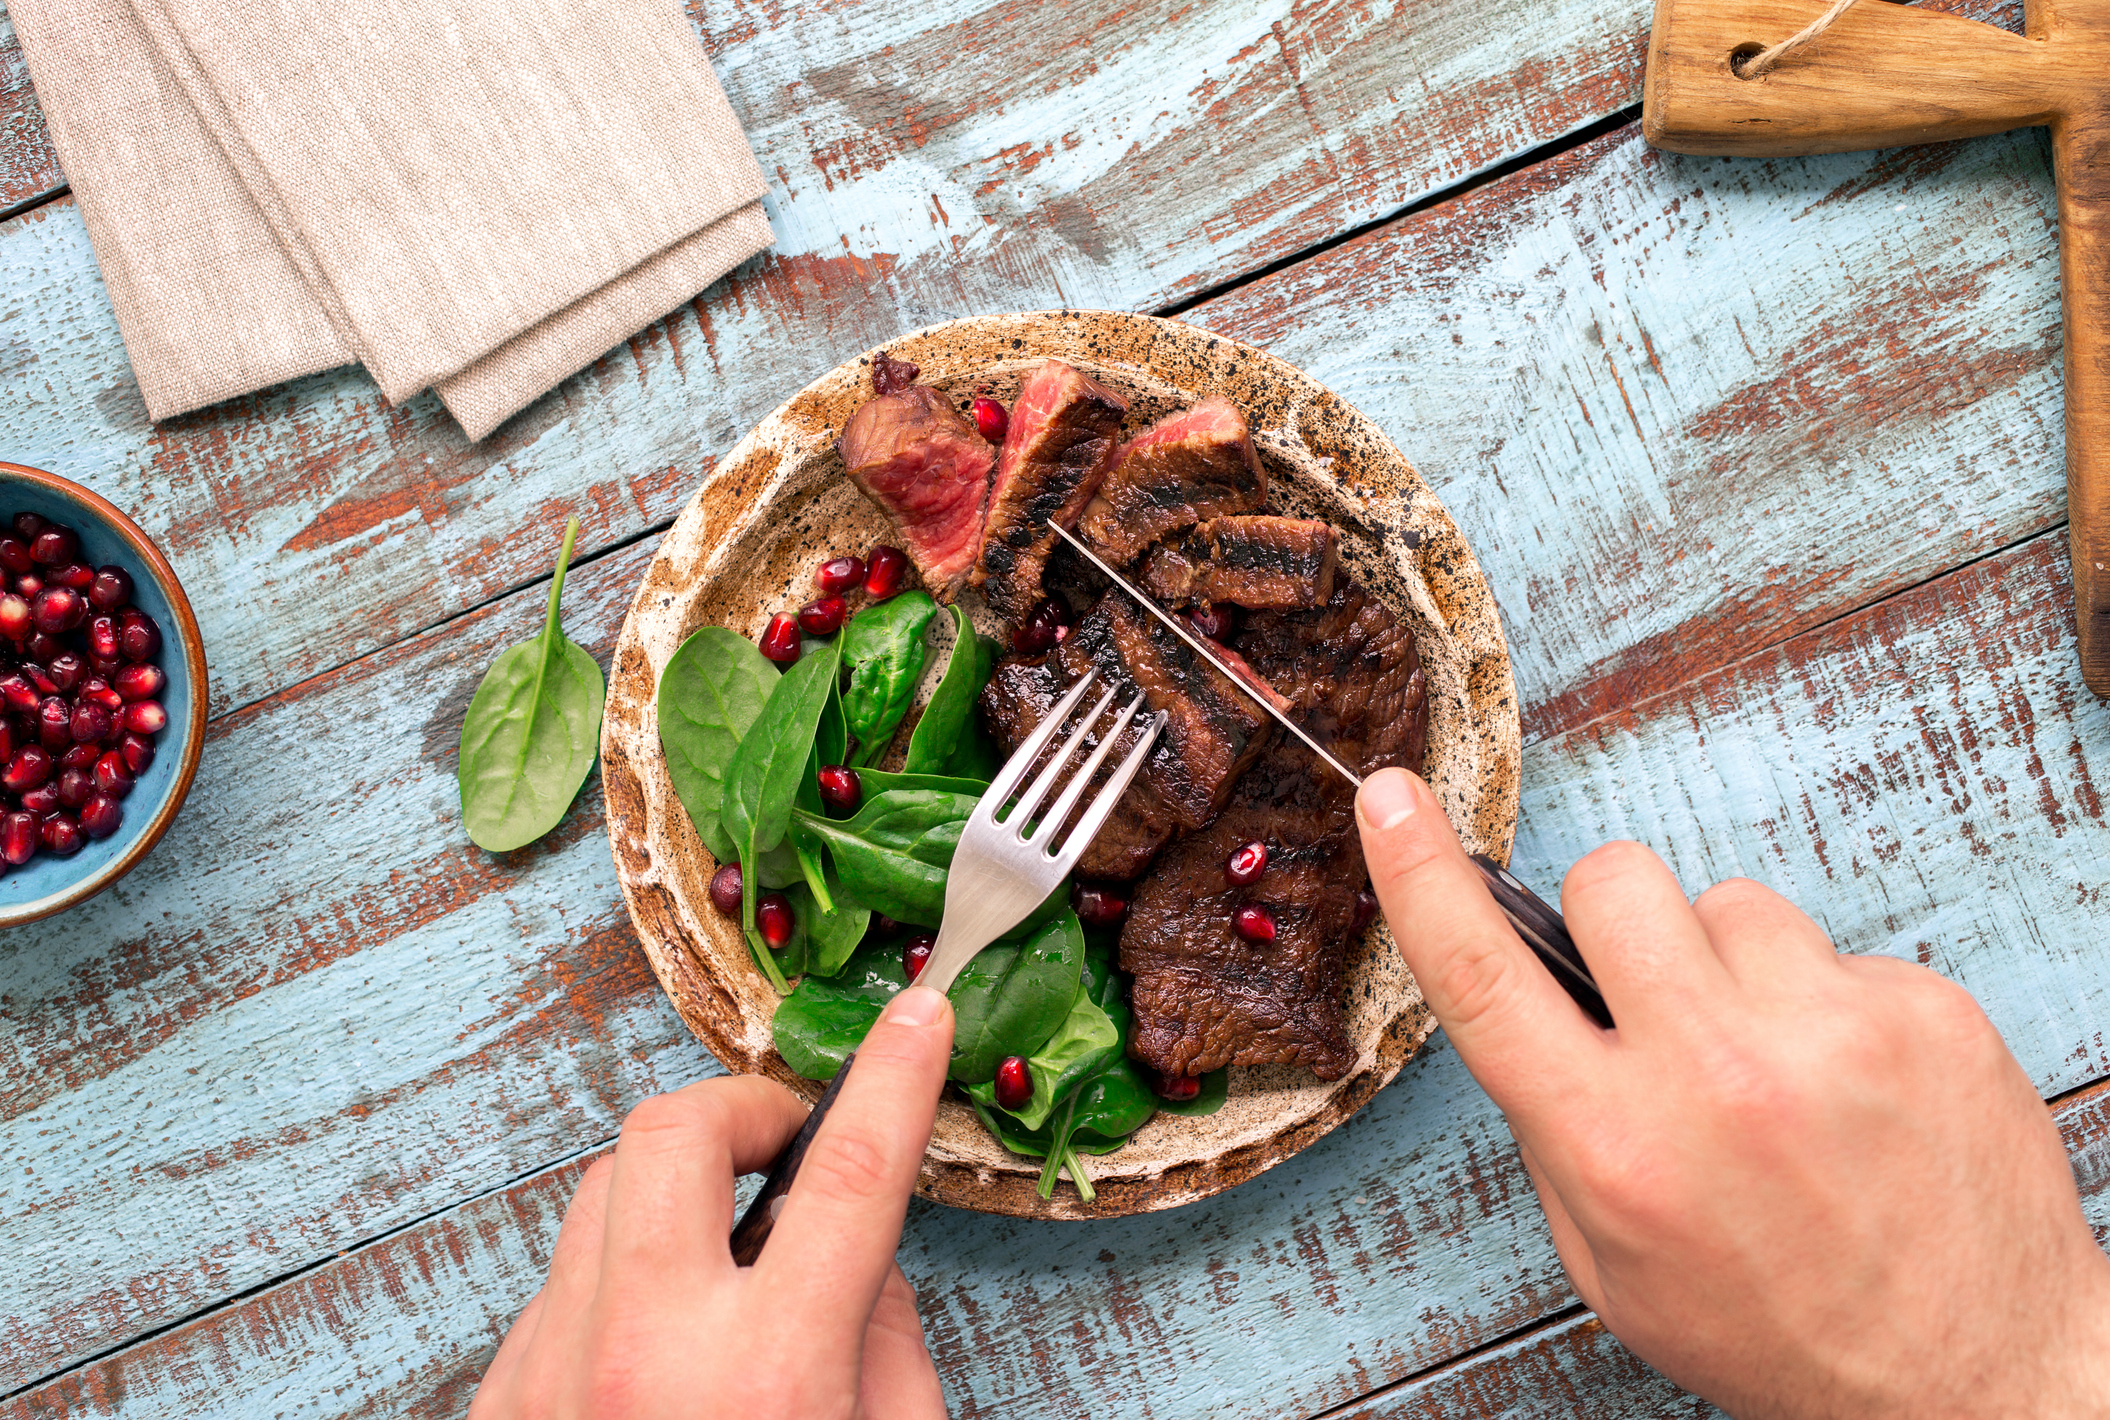 Why red meat causes carcinogenic compounds in the colon